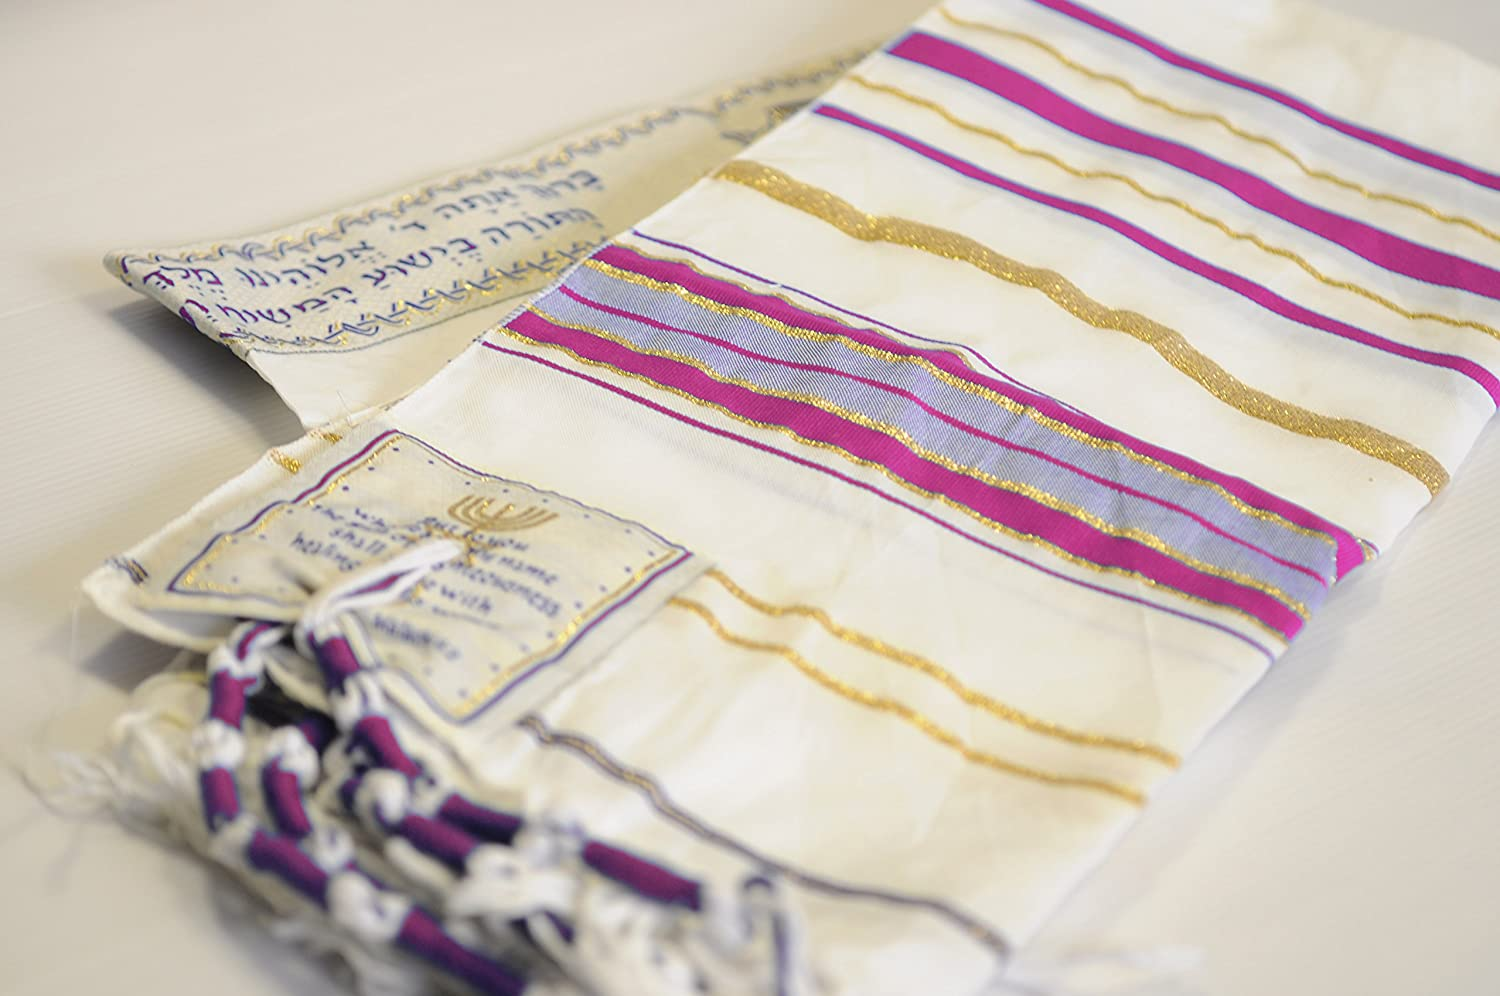 Messianic Tallit Prayer Shawl Talit Pink And Gold With Talis Bag Spring Nahal